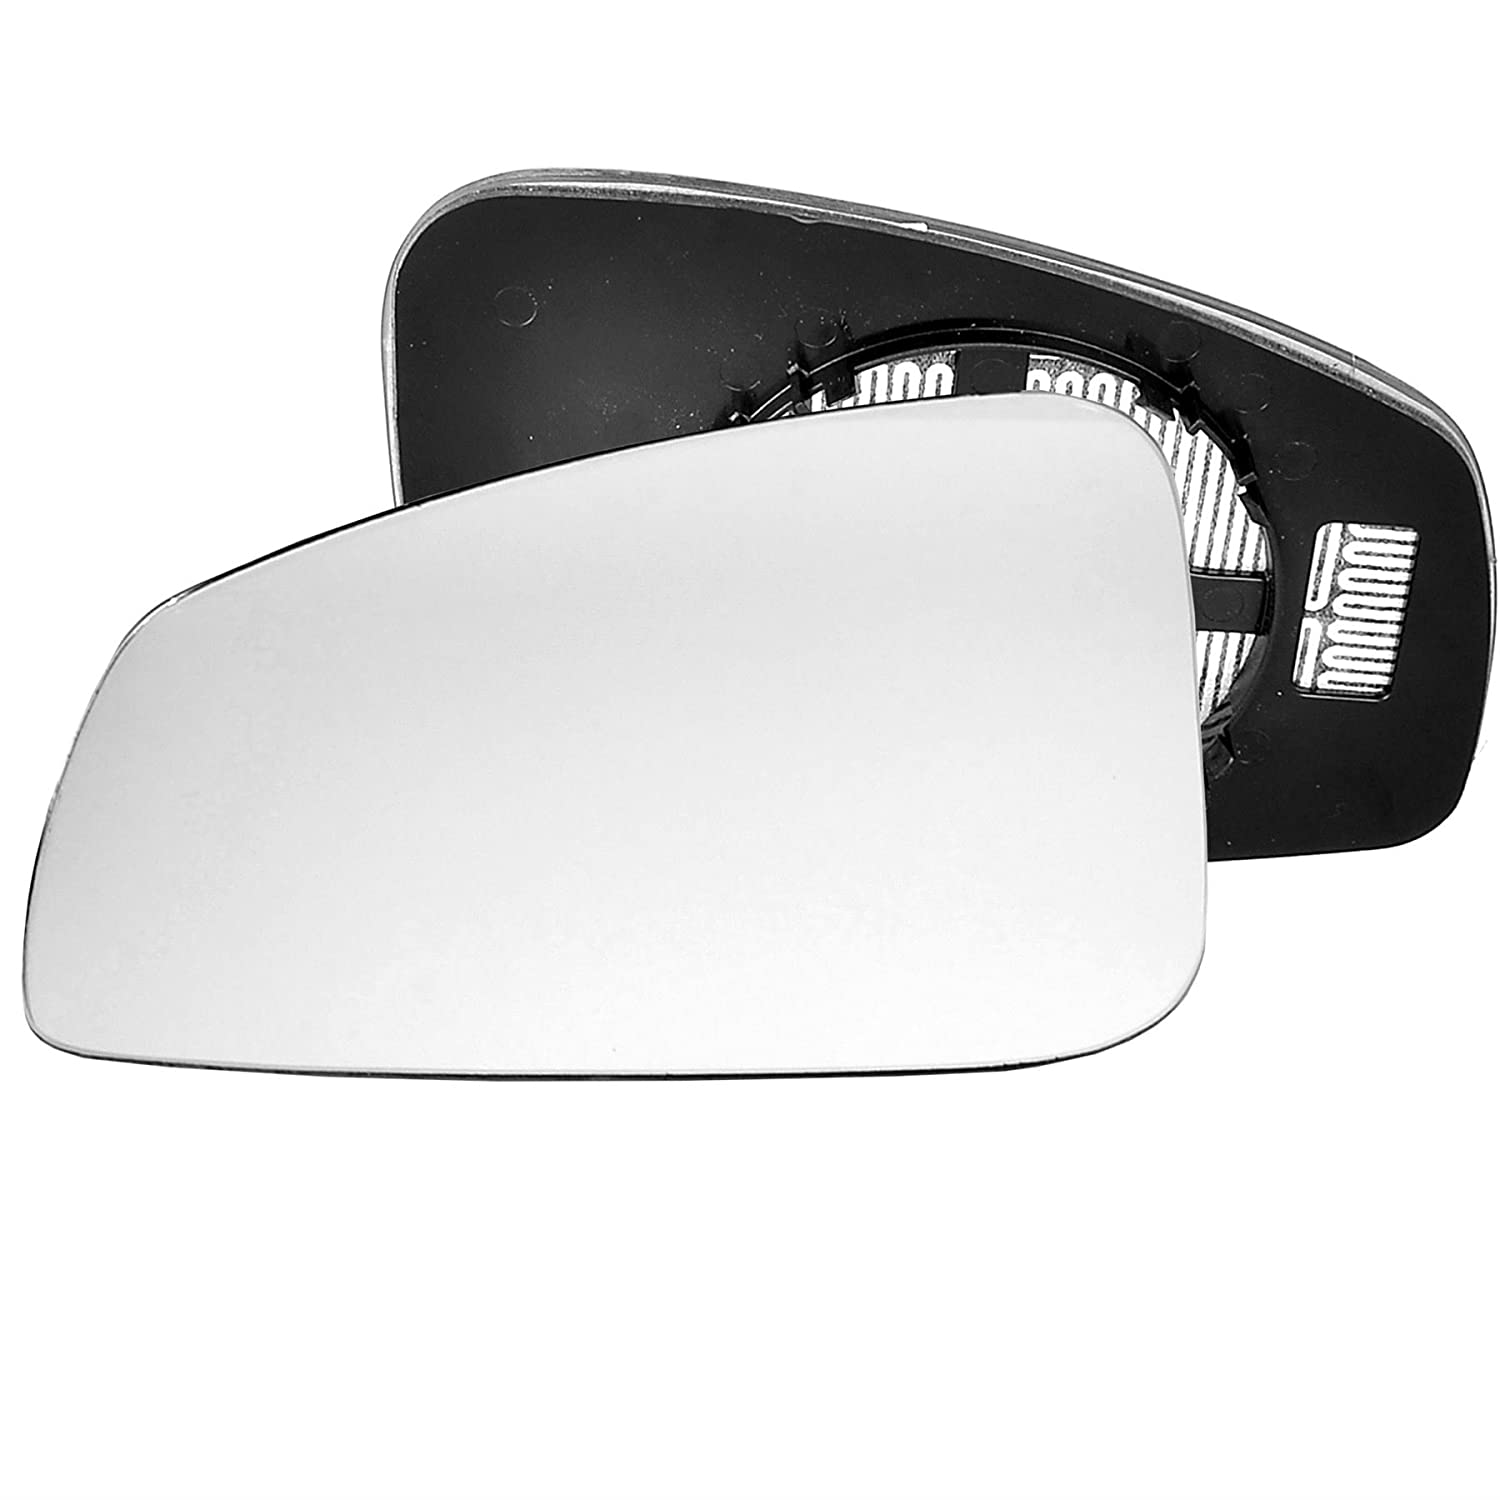 Passenger left hand side Heated wing door Silver mirror glass with backing plate #C-SHY/L-RTME08 [Clip On] Sylgab